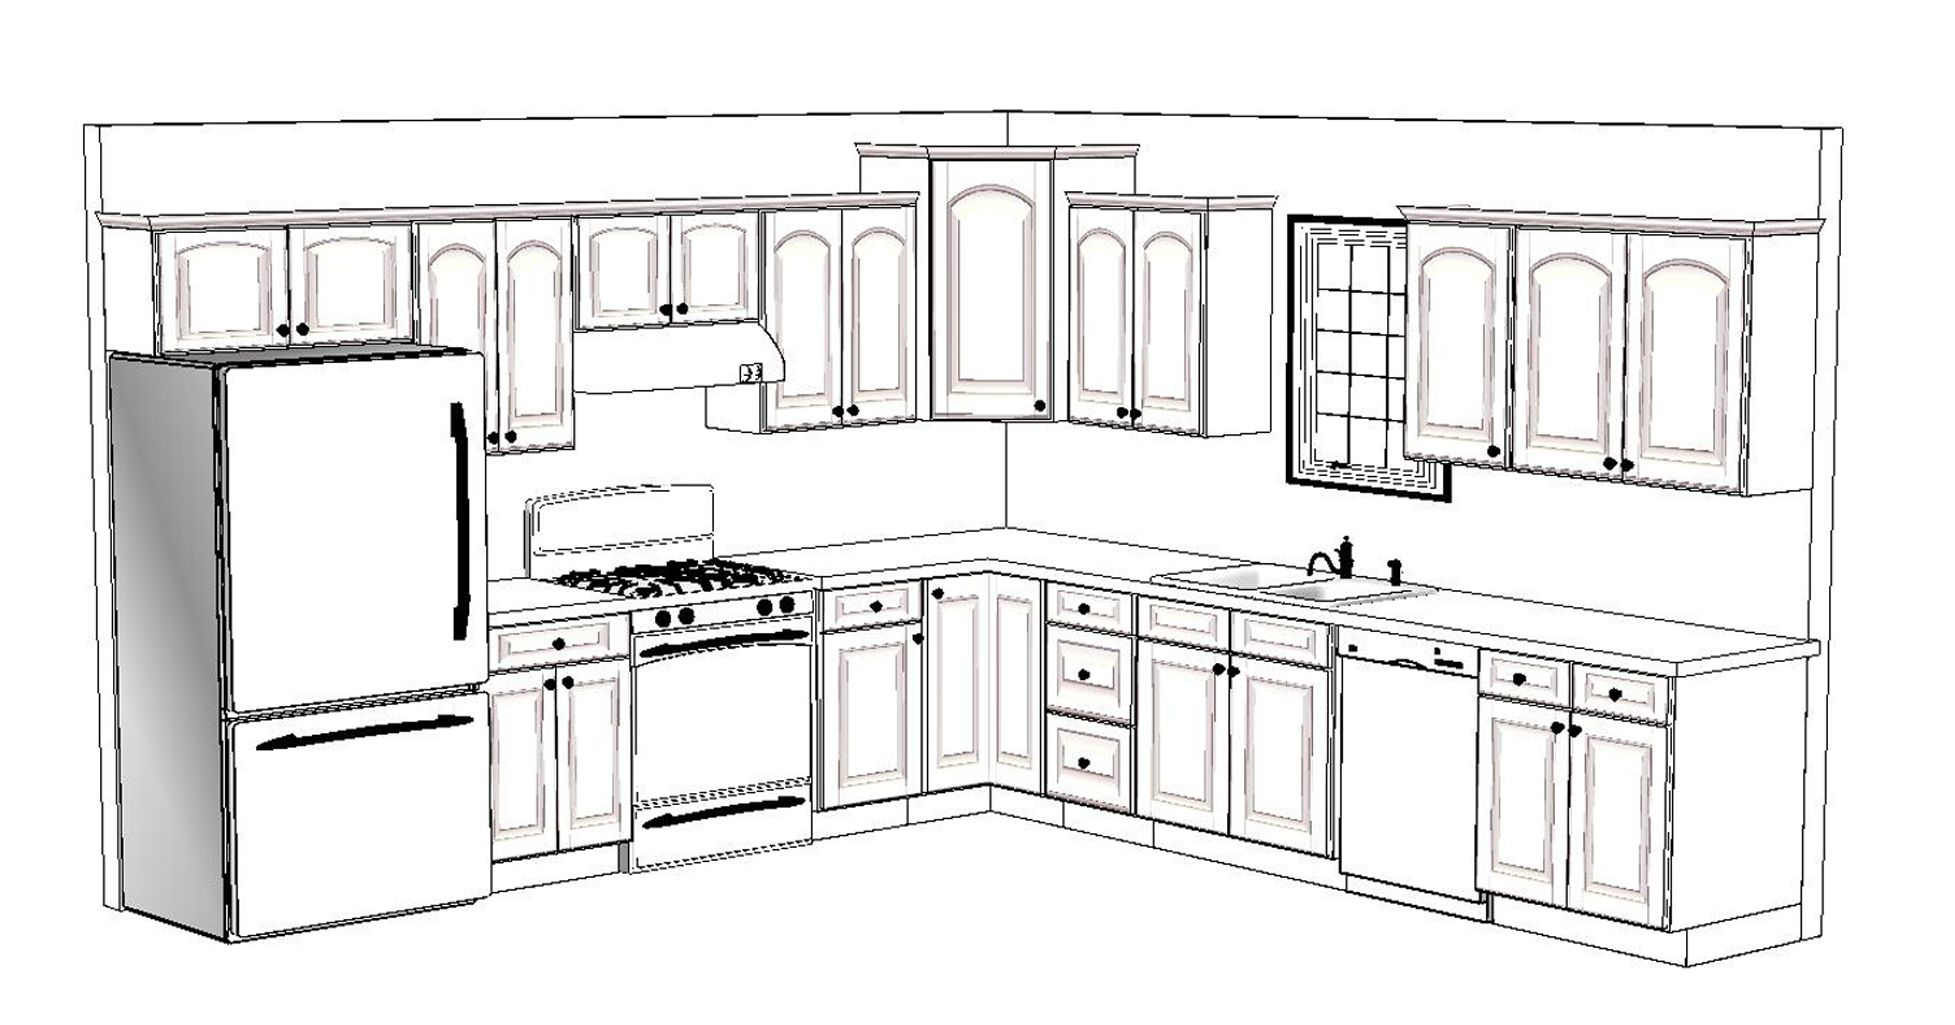 best kitchen layout ideas to redesign your kitchen kitchens pinterest kitchens kitchen on kitchen layout ideas with island id=22039